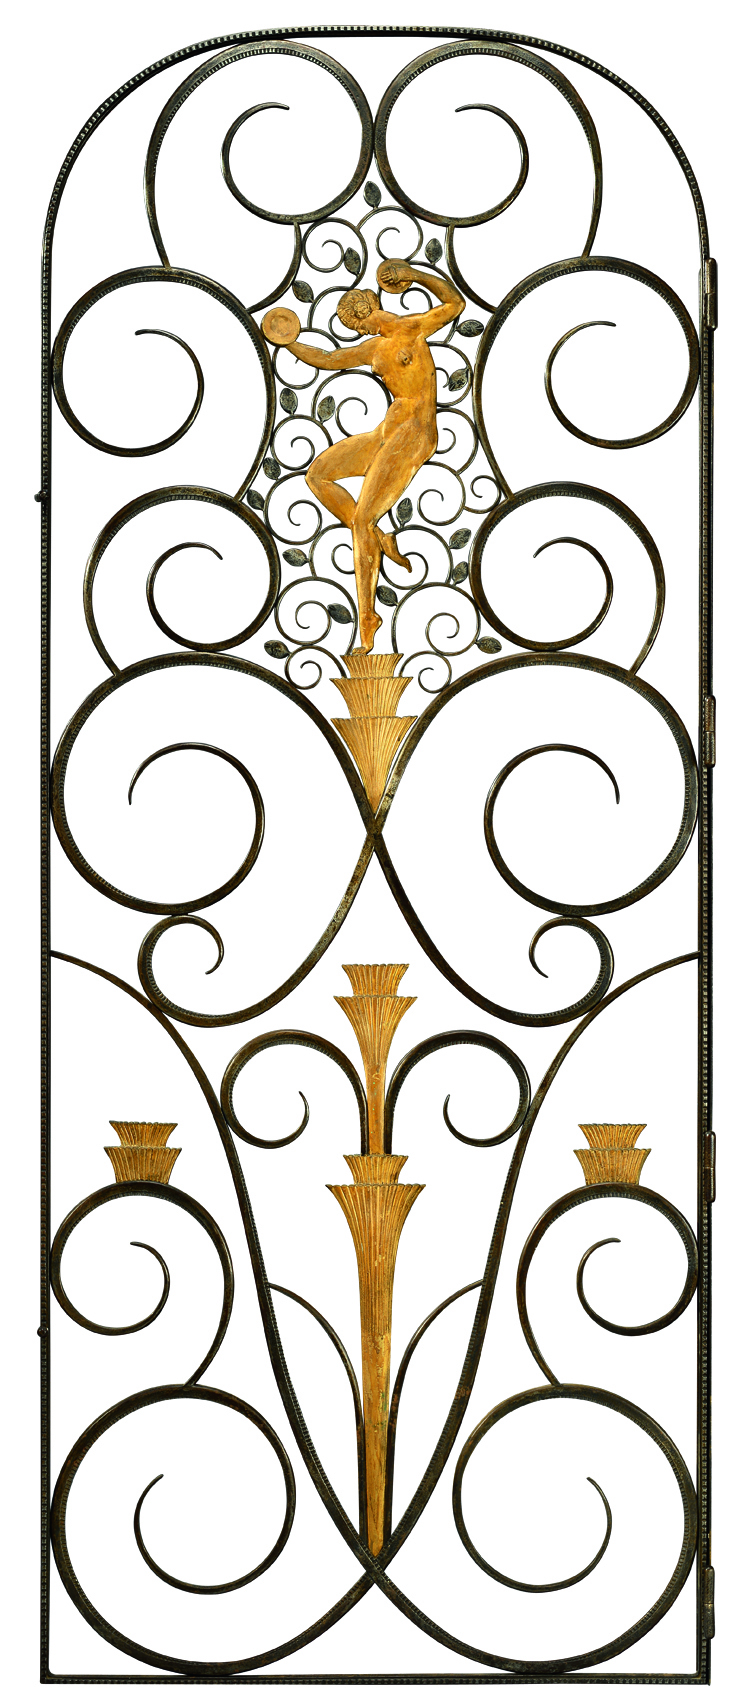 Wrought iron gate by Edgar Brandt (1880-1960)